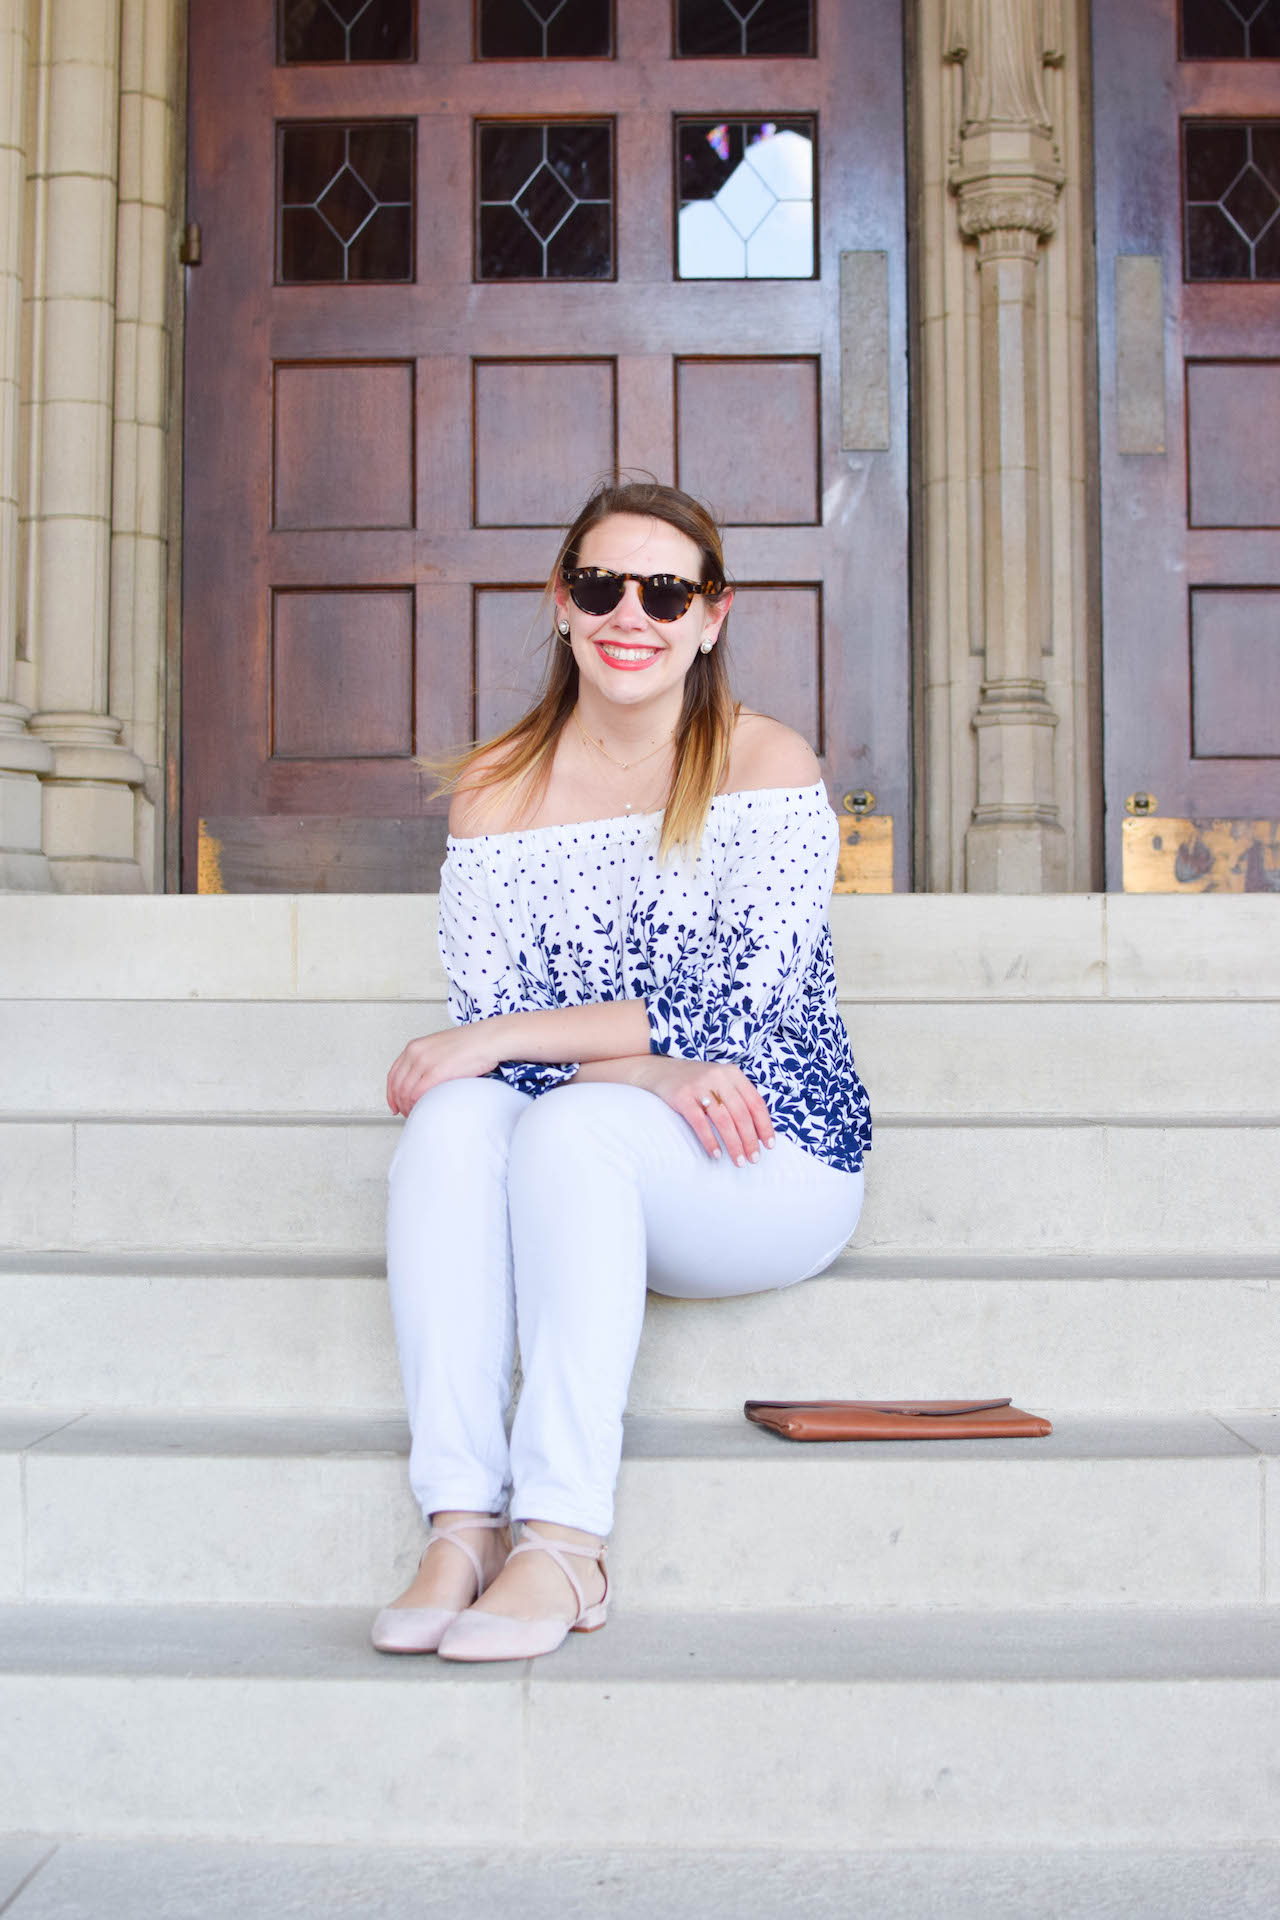 off shoulder top outfit idea for spring